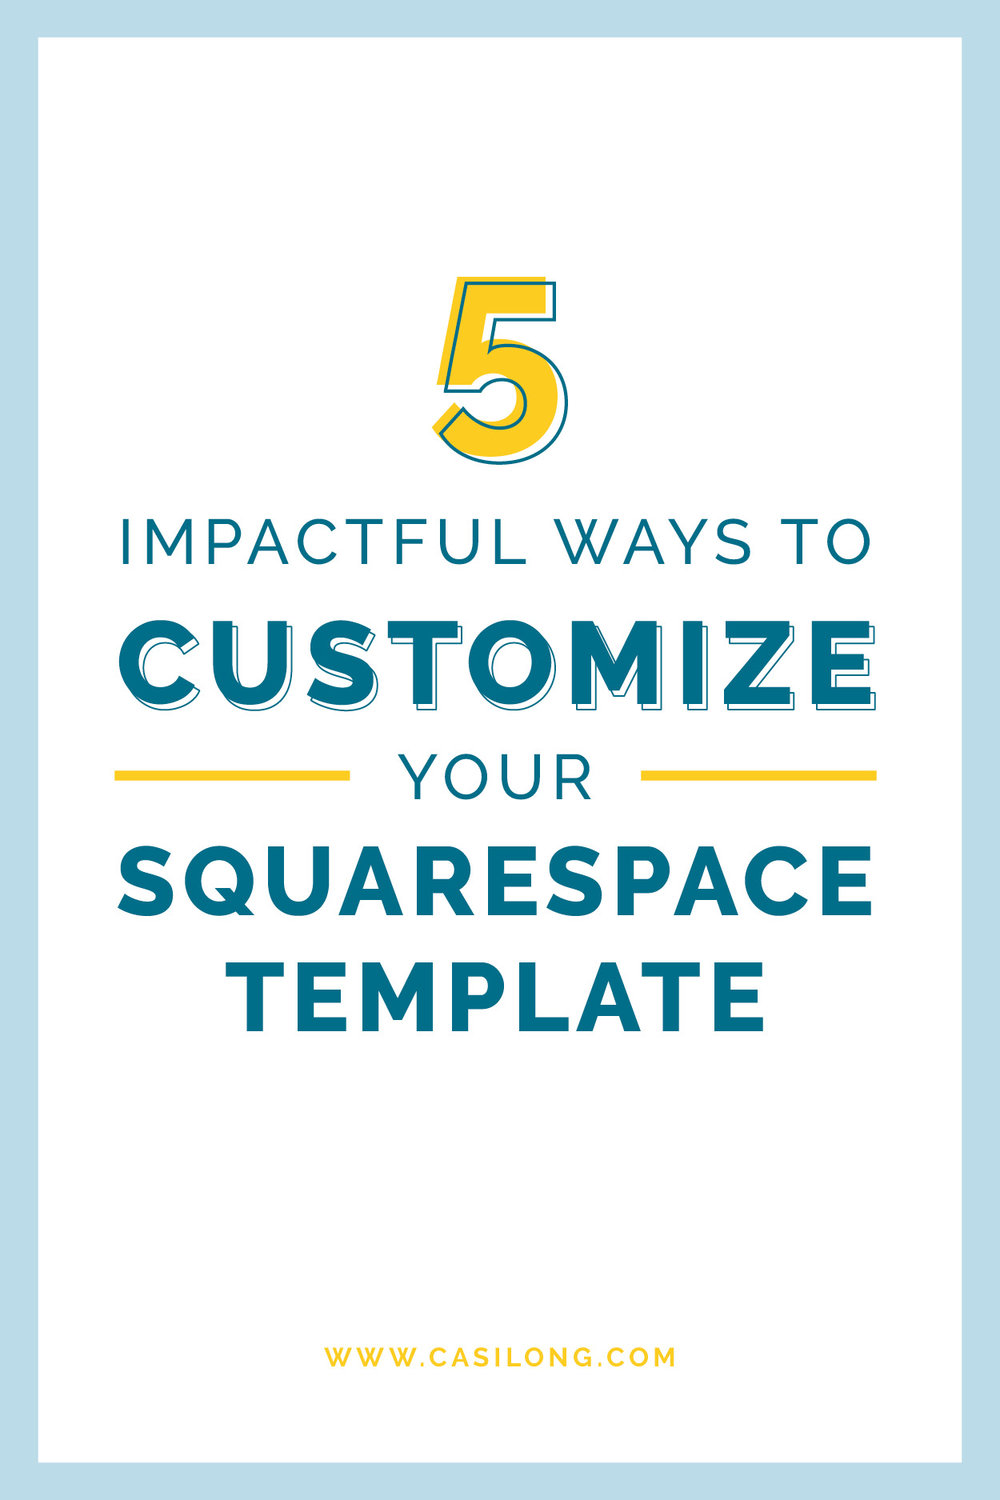 5 Impactful Ways to Customize your Squarespace Template | casilong.com/blog #casilongdesign